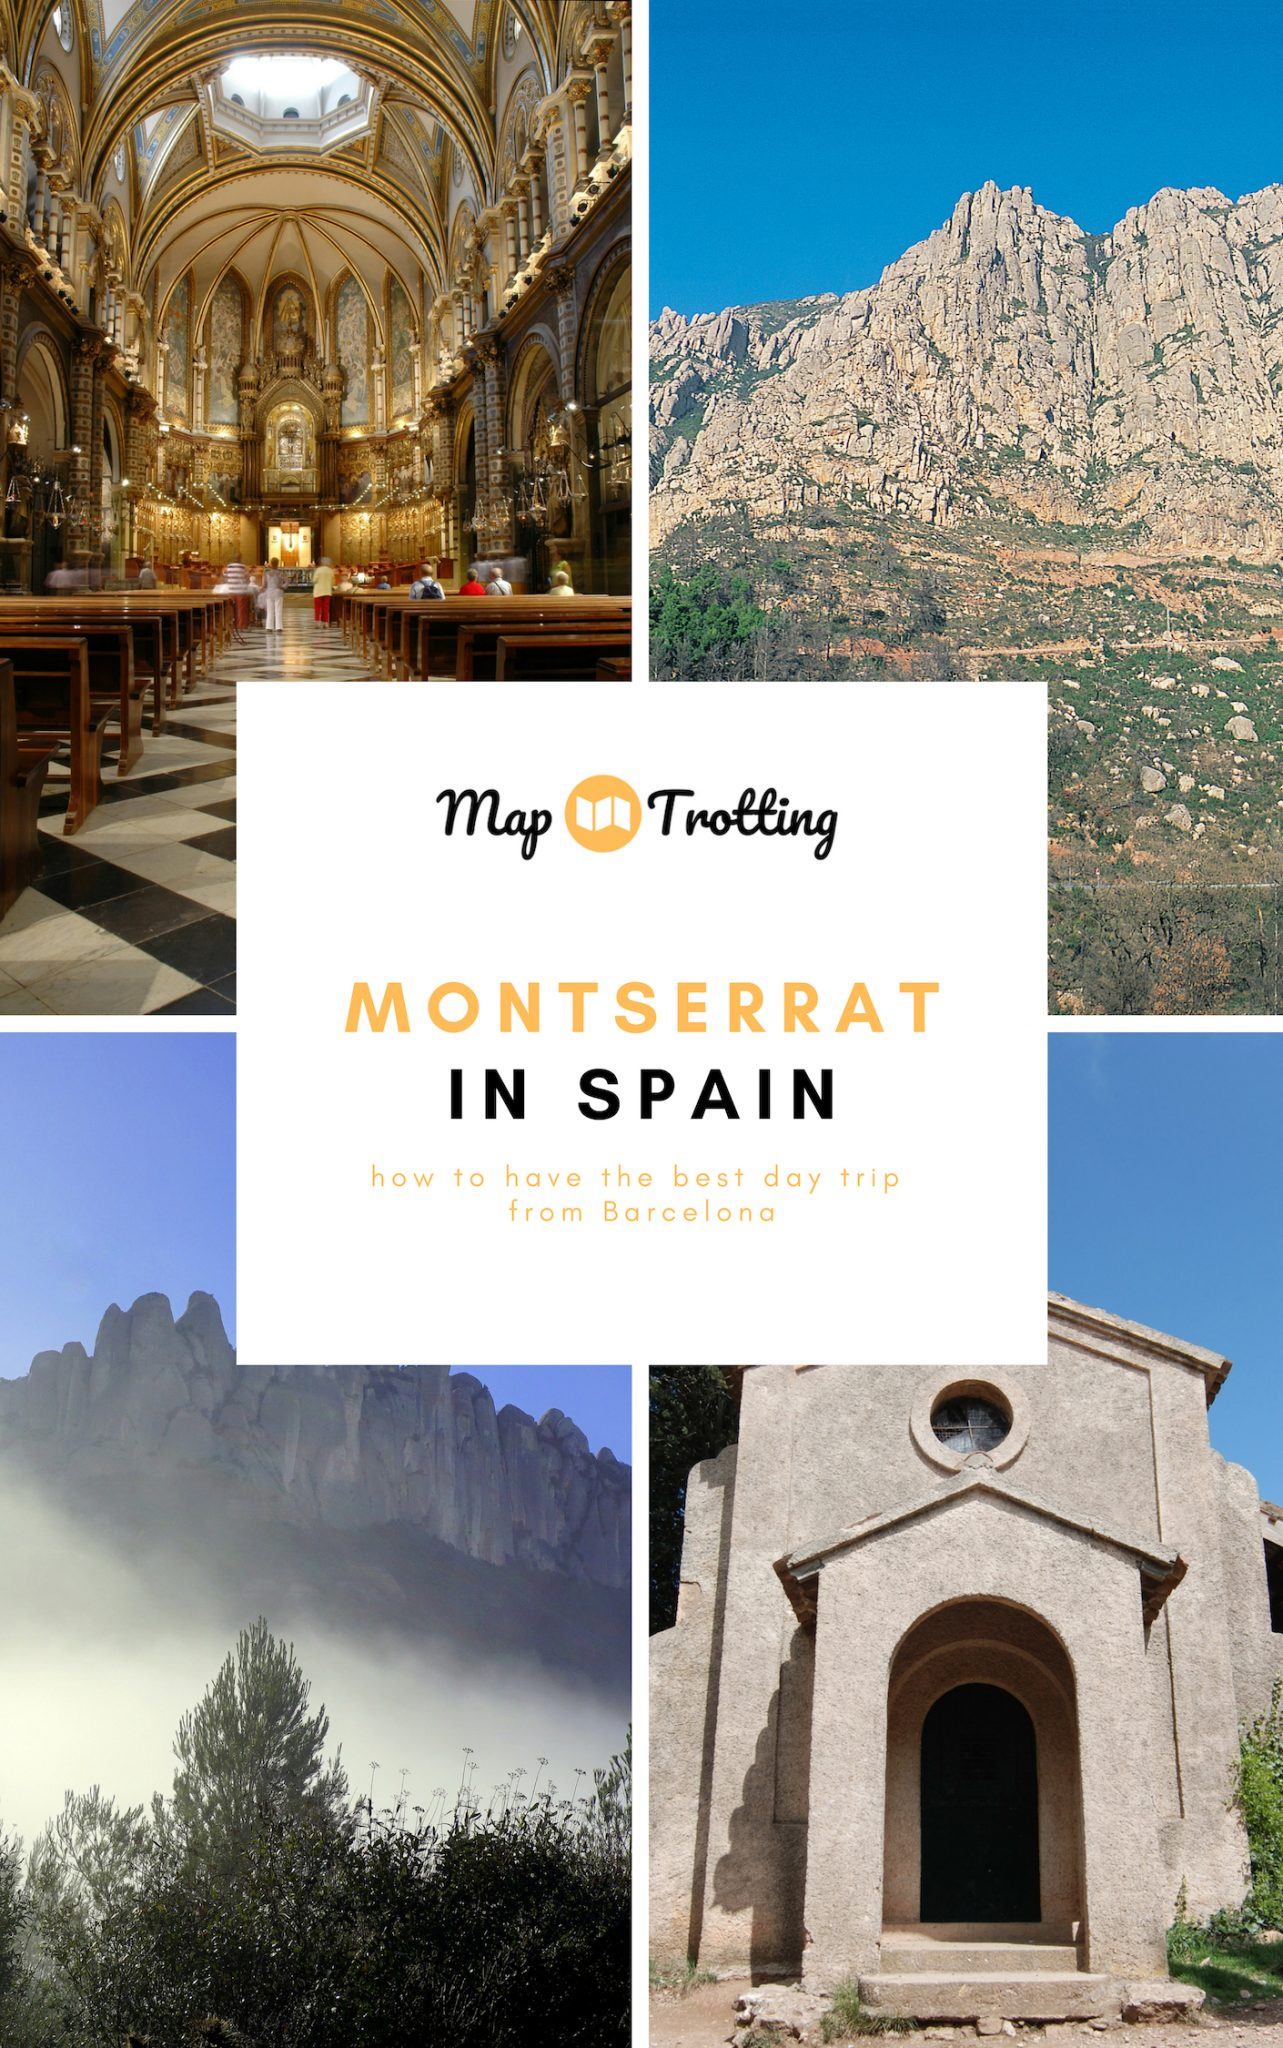 Sights of Montserrat in Spain: The golden interior of Santa Maria de Montserrat Abbey, a chapel and misty peaks of Montserrat